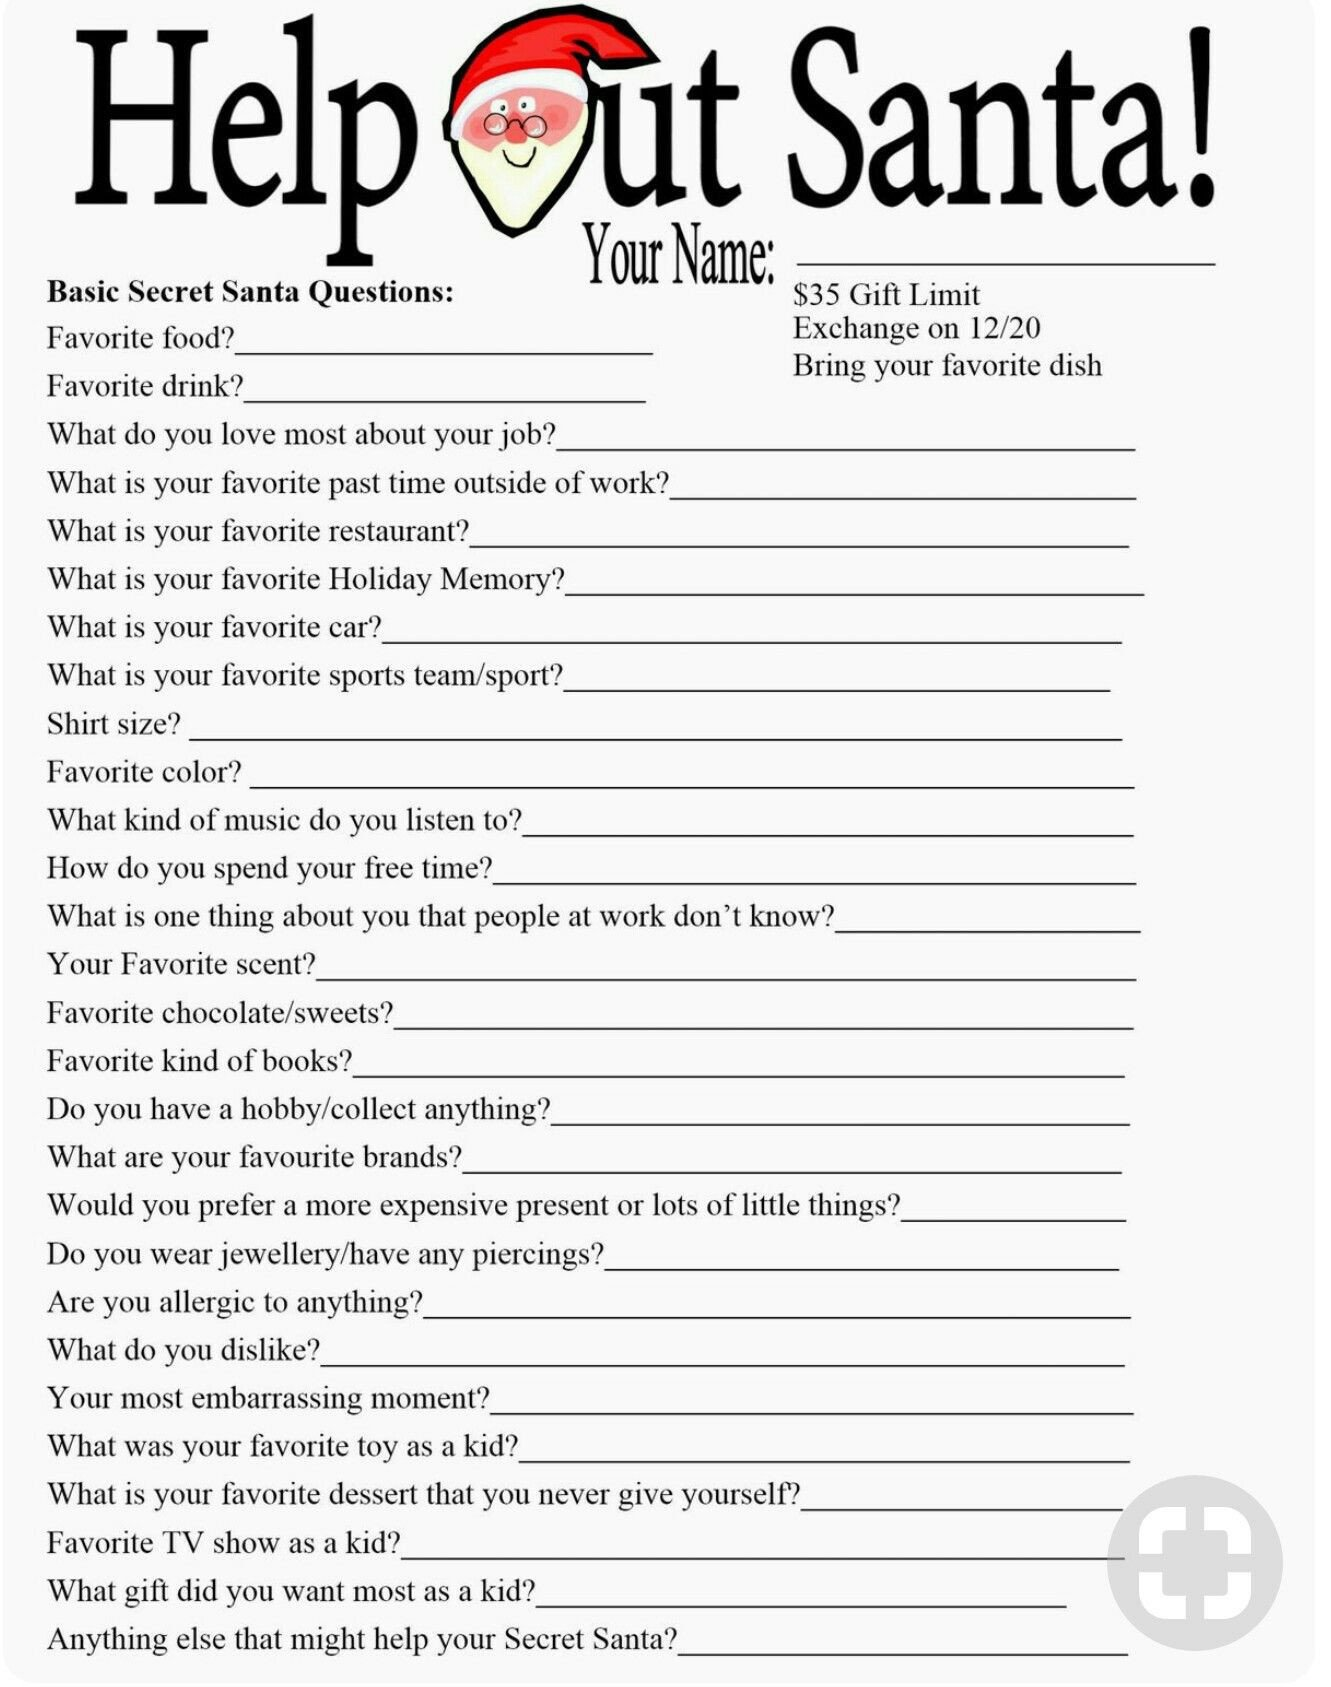 Secret Pal Questionaire Help Out Santa A Questionnaire